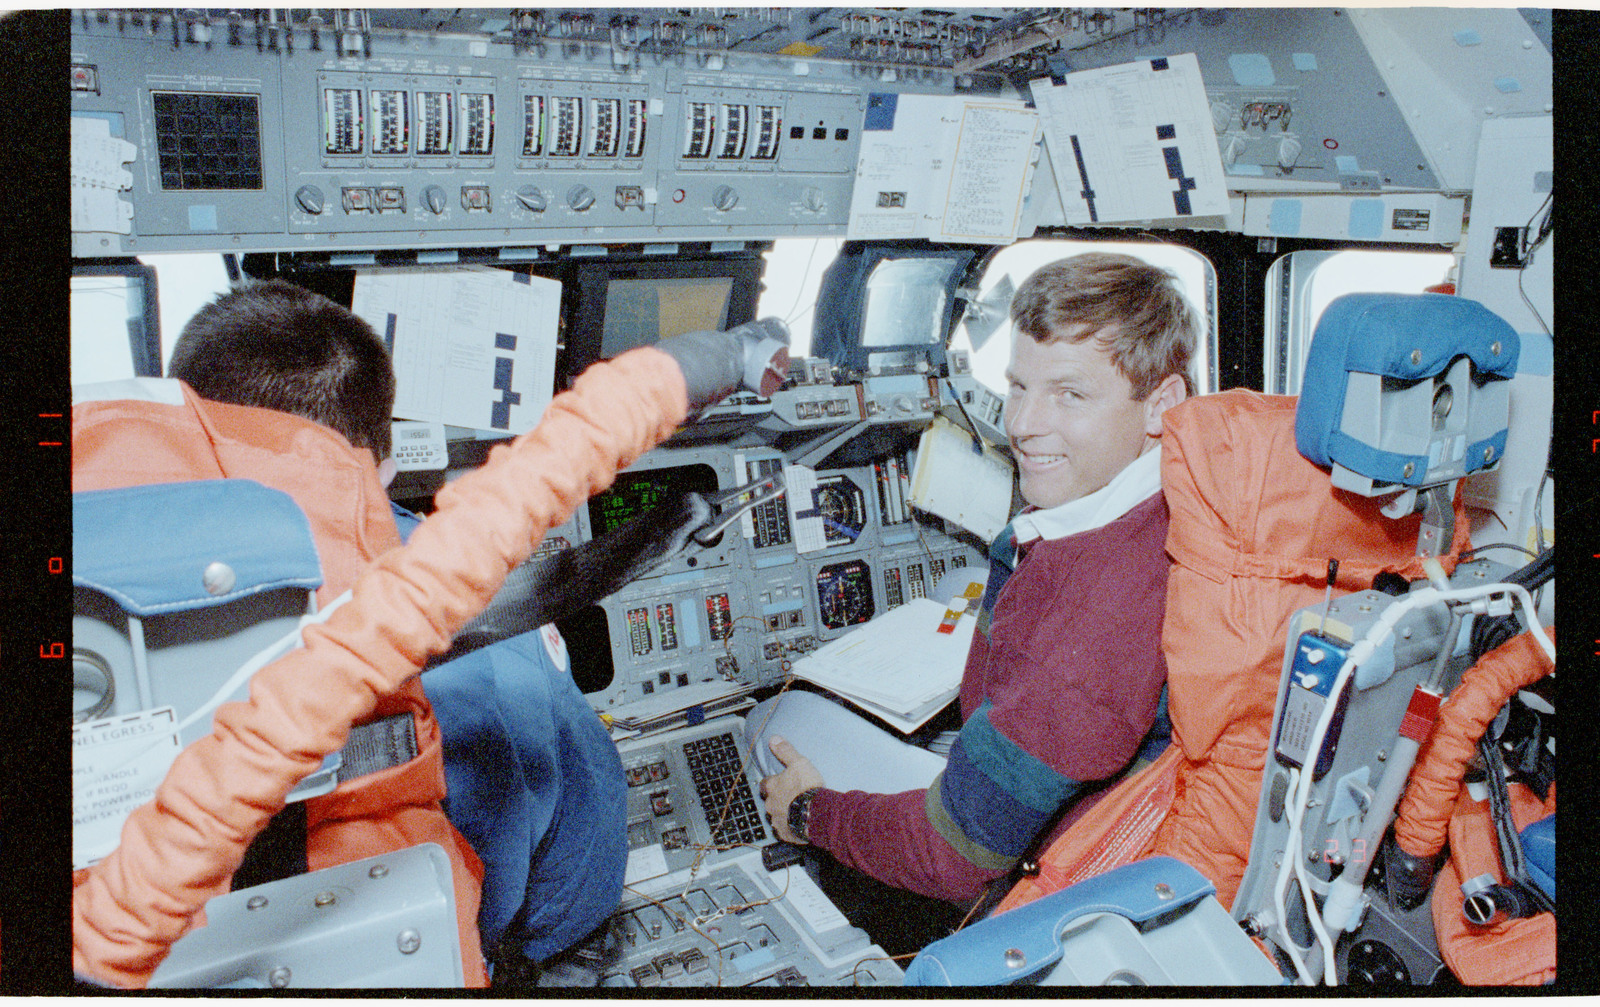 STS056-39-015 - STS-056 - Crewmembers in the fwd flight deck reviewing inflight procedures manual.